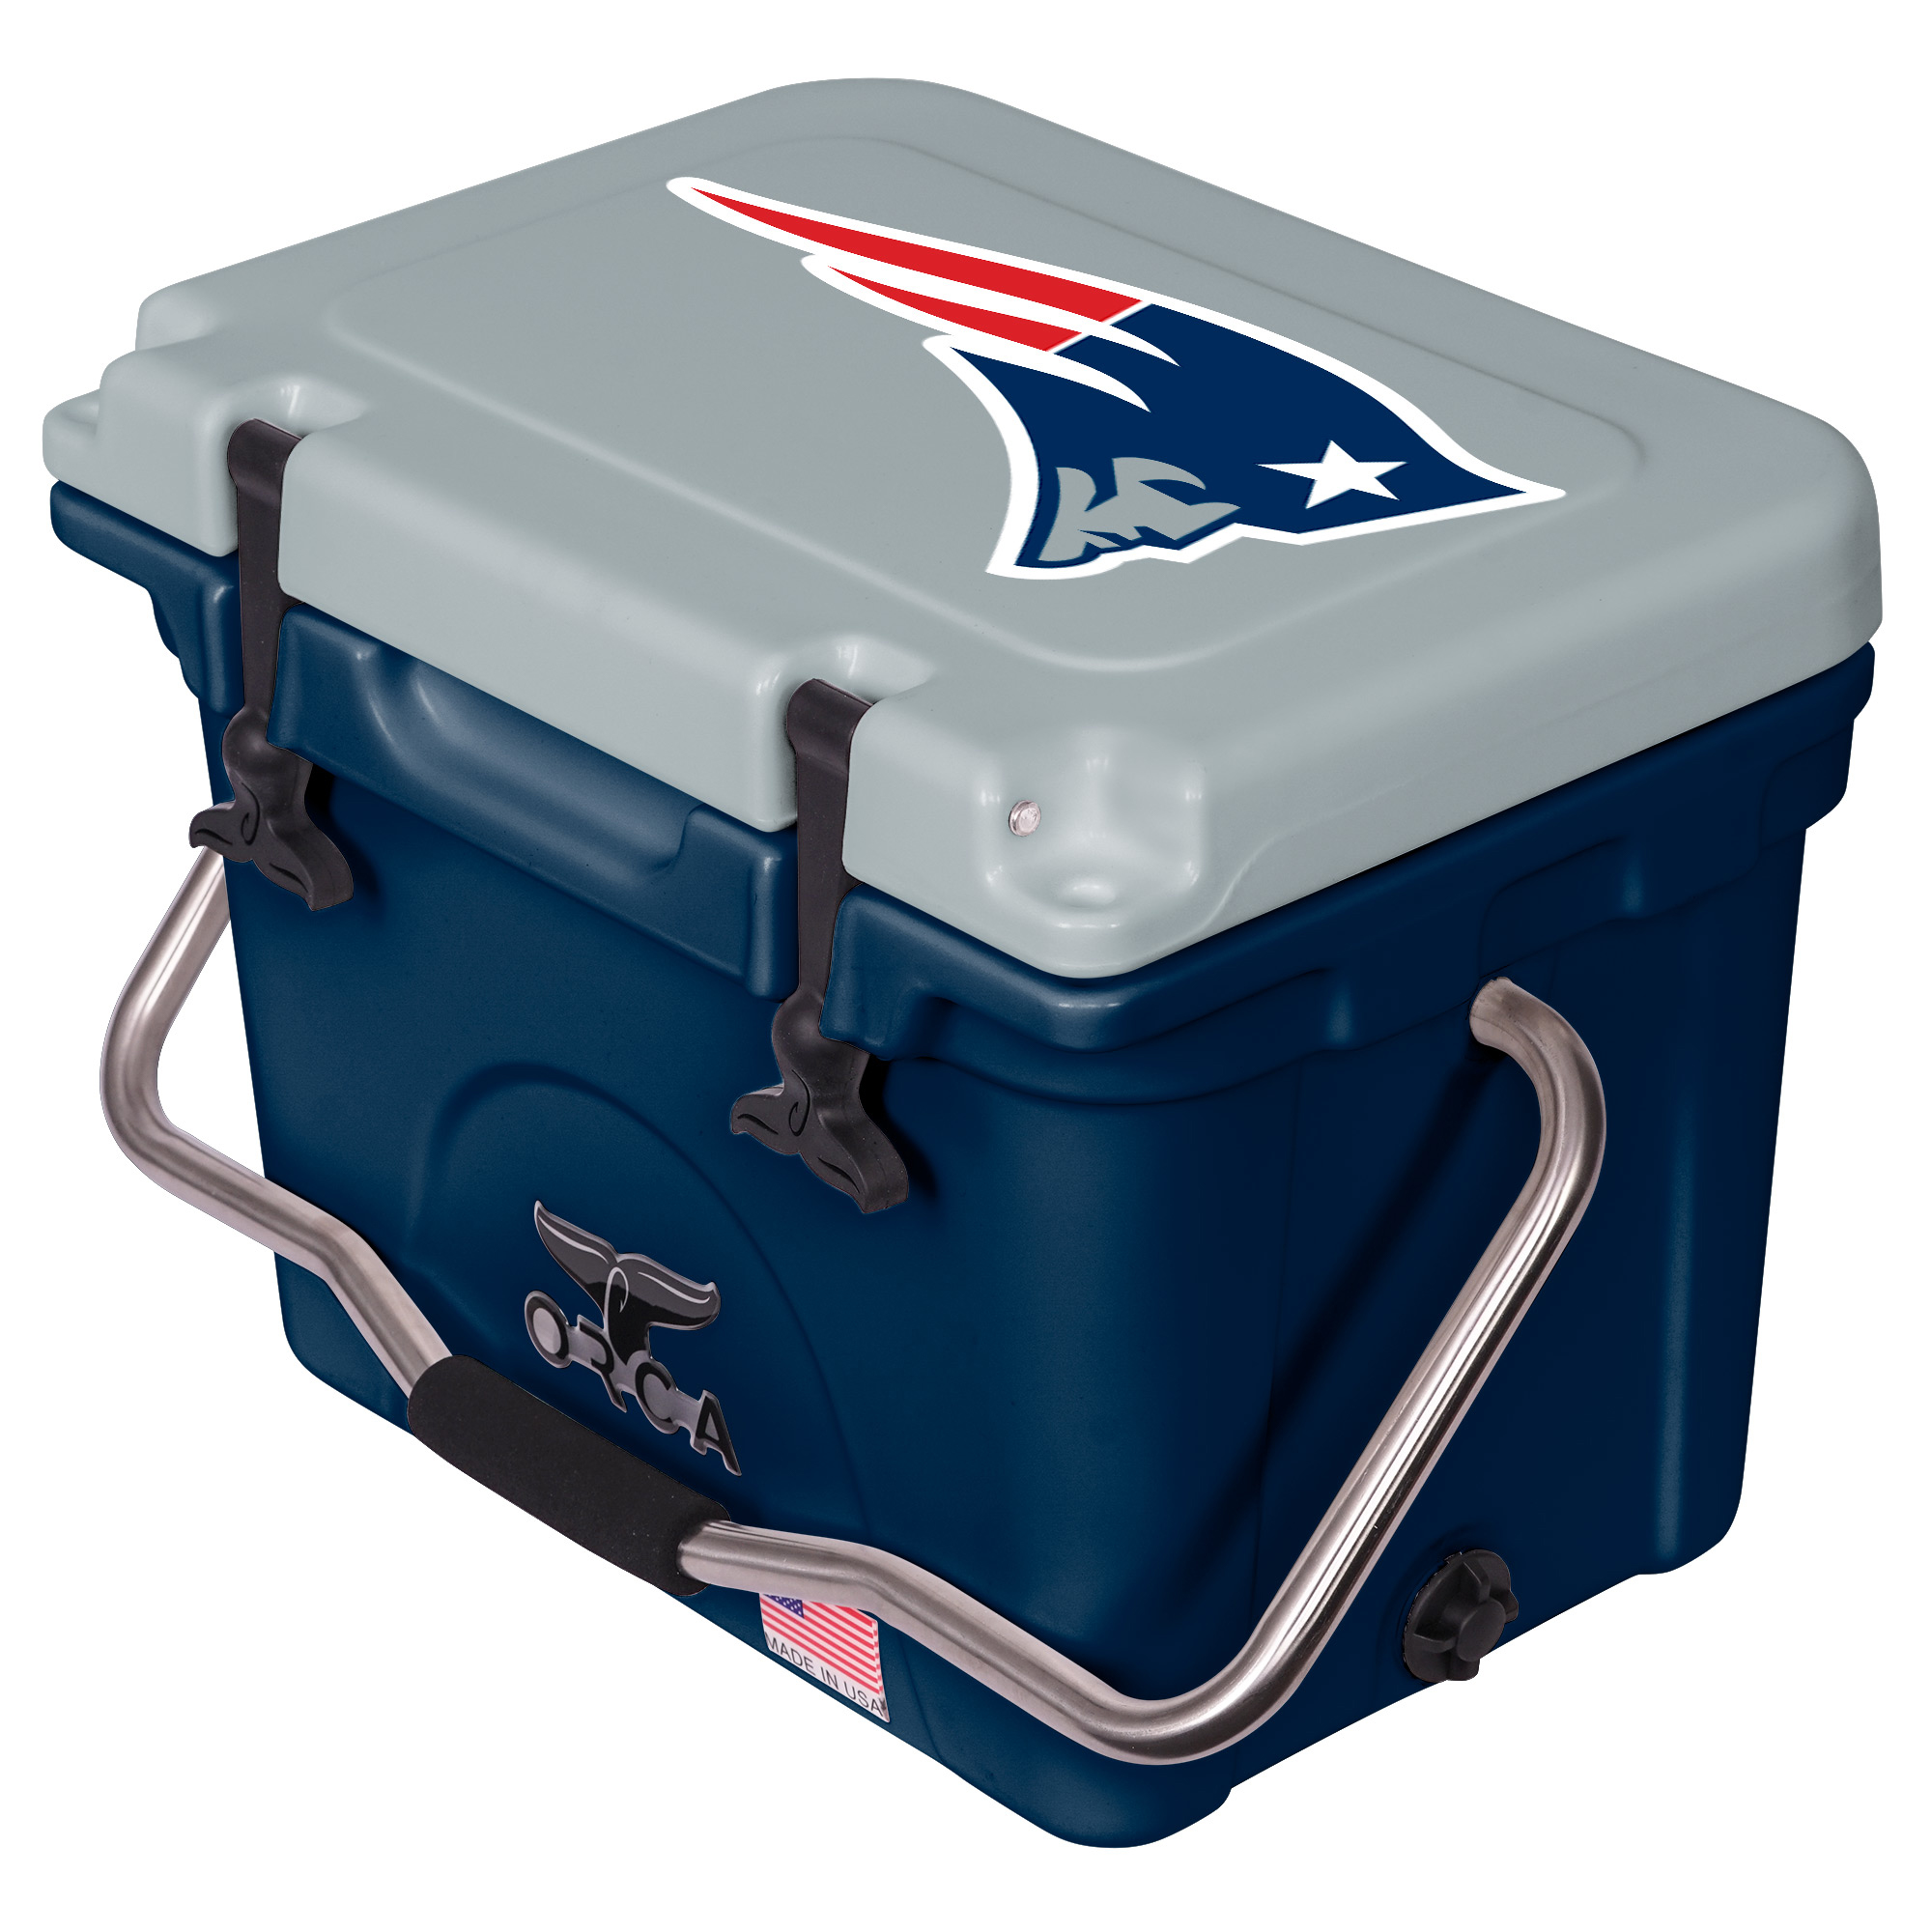 New England Patriots ORCA 20-Quart Hard-Sided Cooler - Navy/Gray - No Size